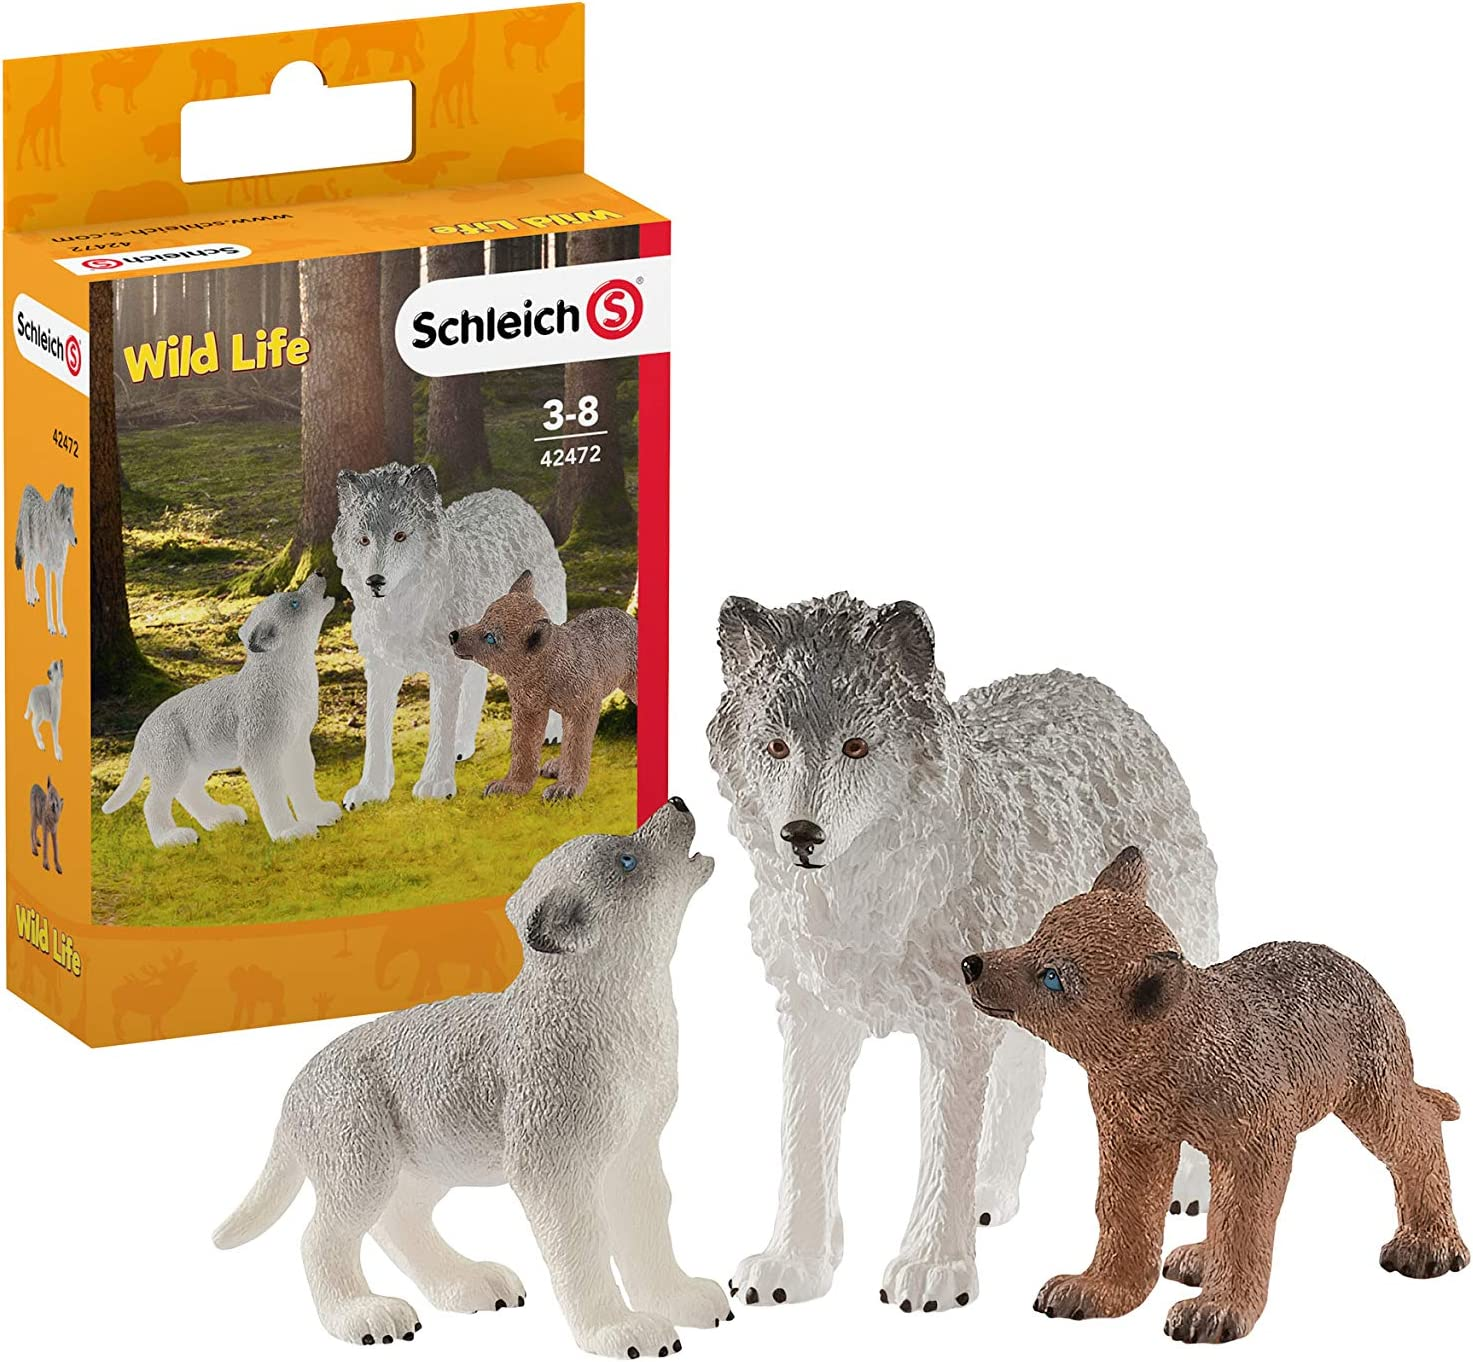 Schleich Wild Life Mother Wolf with Pups 3-Piece Educational Playset for Kids Ages 3-8